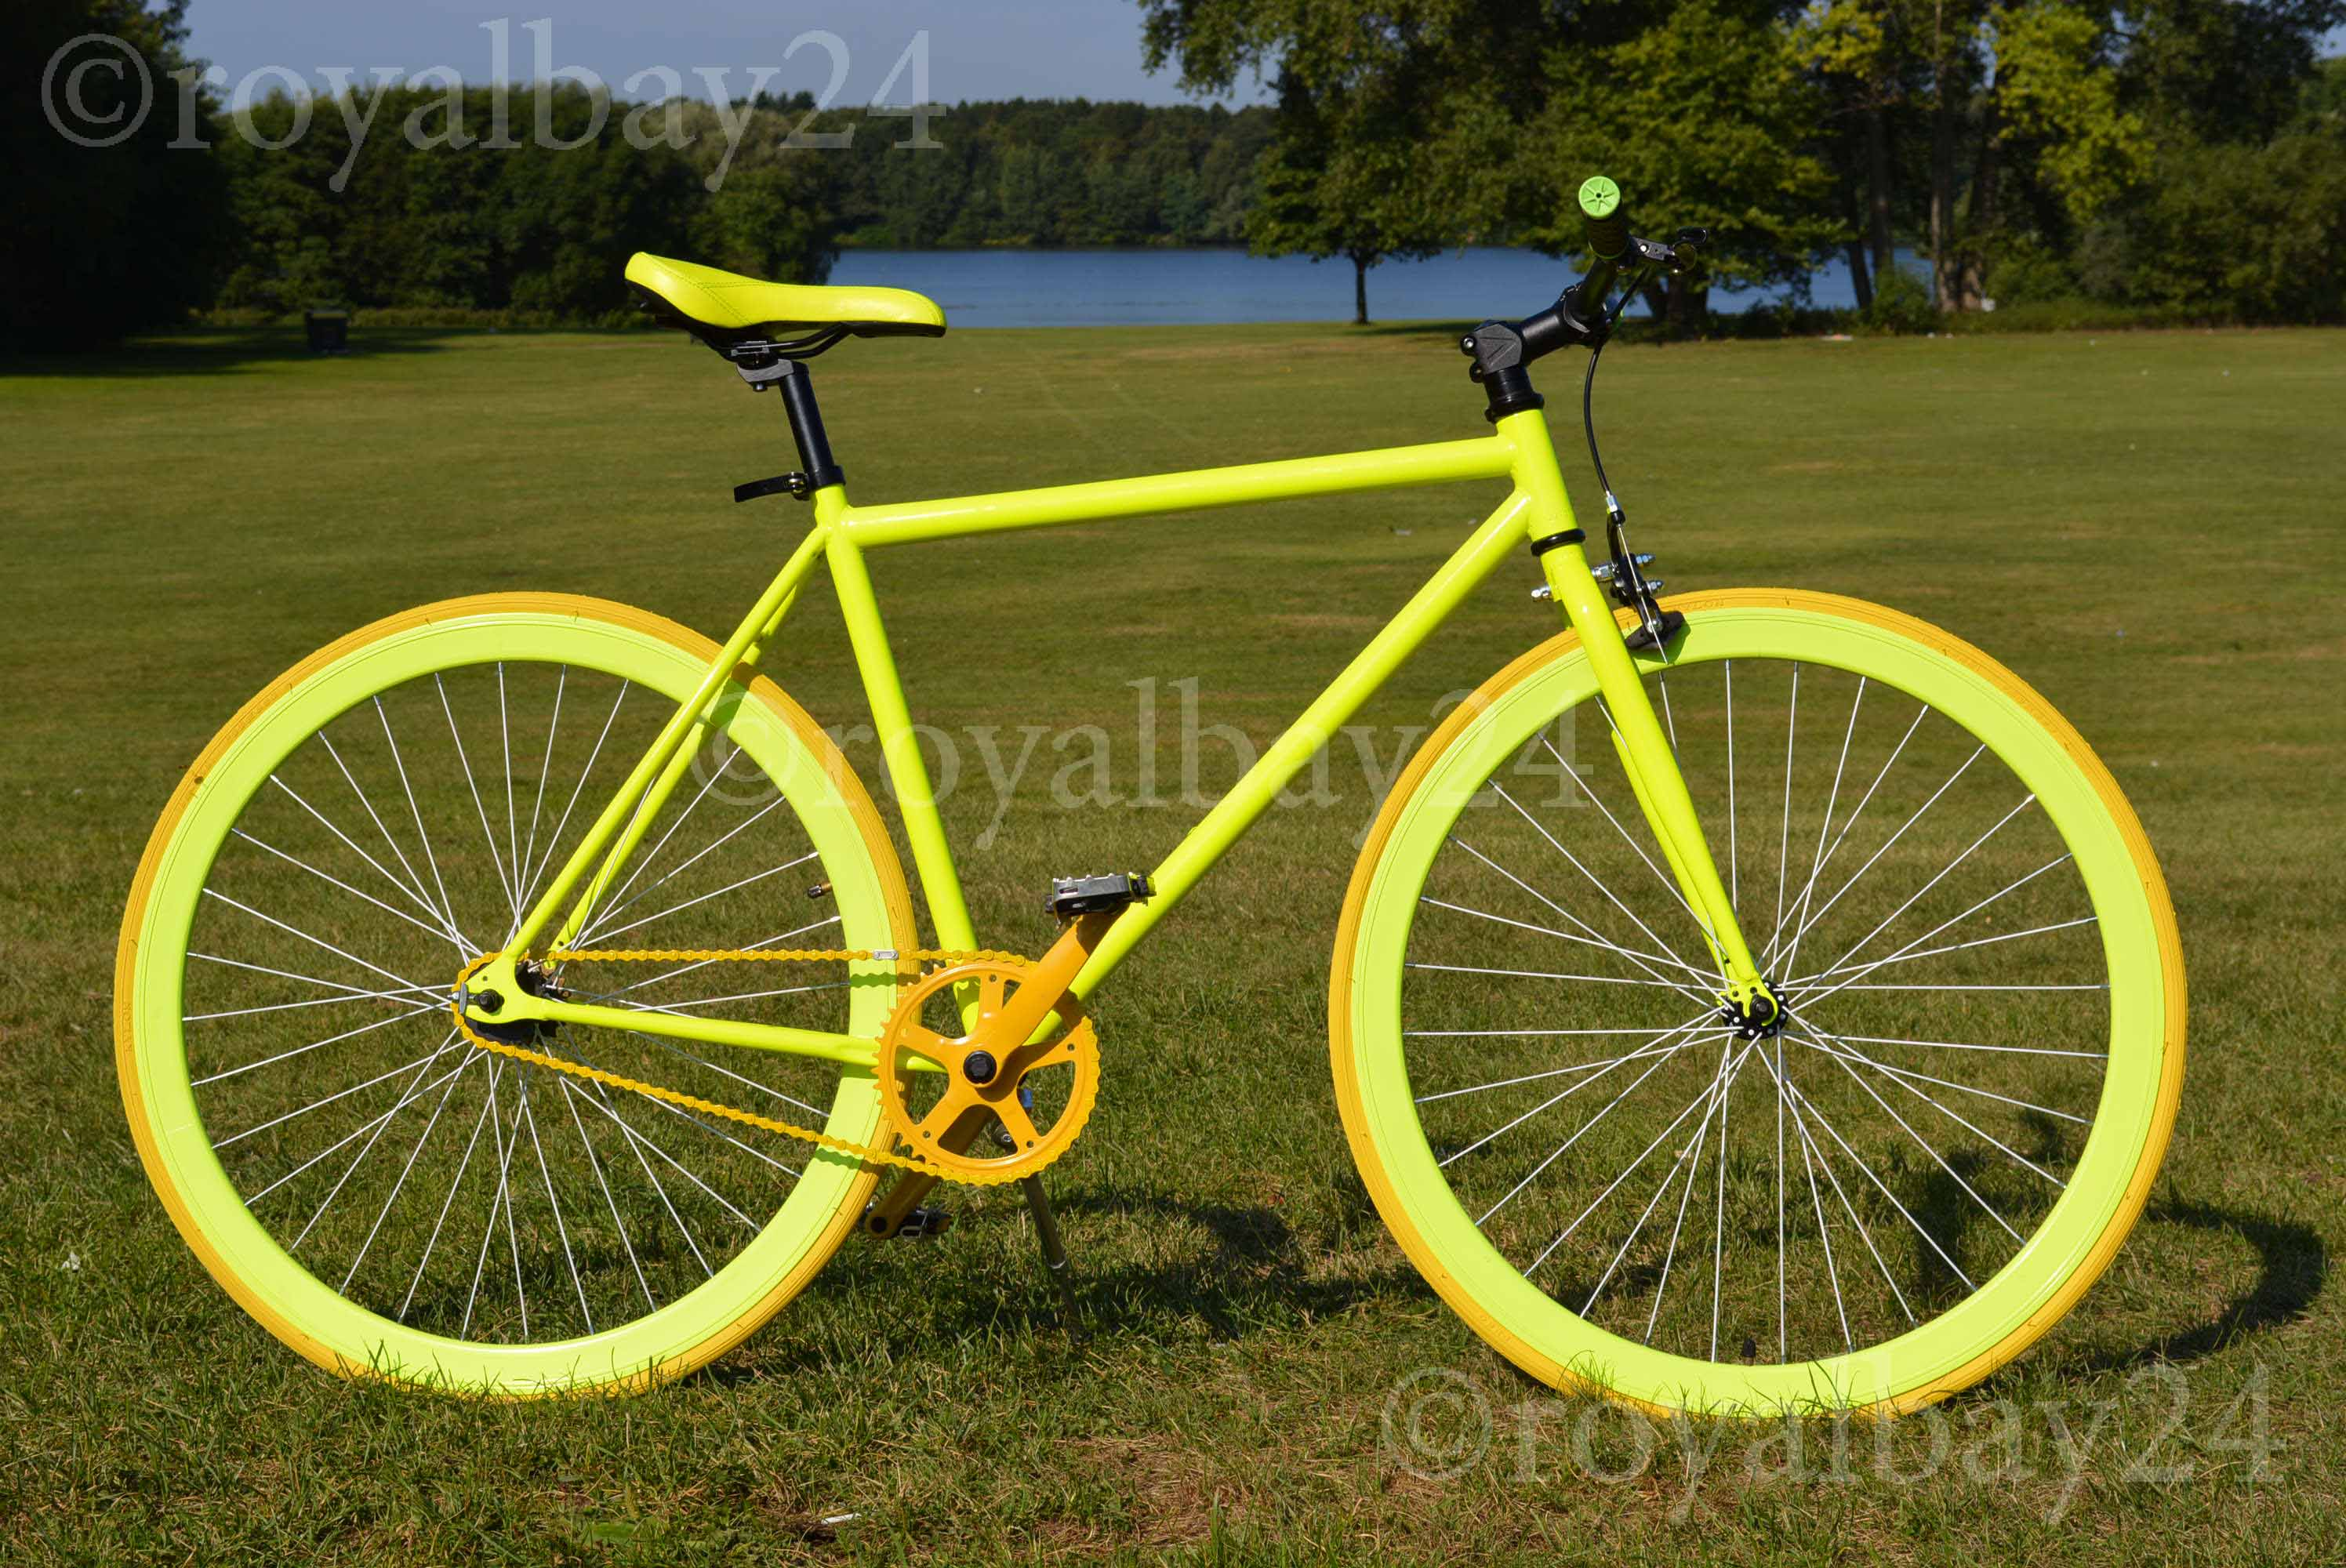 fixie freilauf ritzel speedbike singlespeed rennrad. Black Bedroom Furniture Sets. Home Design Ideas